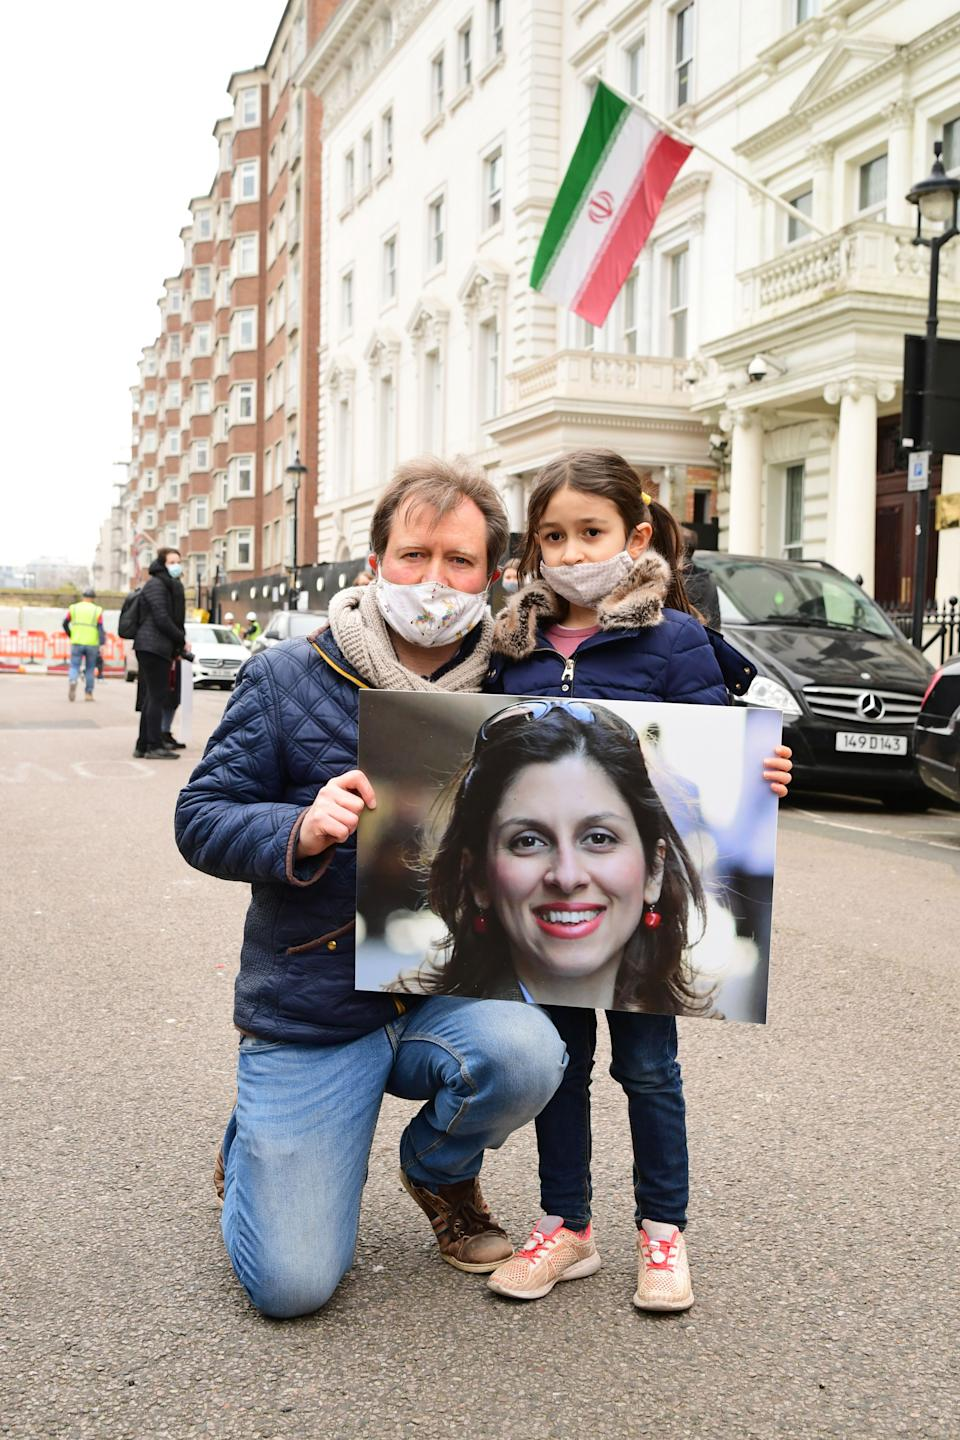 Richard Ratcliffe, the husband of Nazanin Zaghari-Ratcliffe, with his daughter Gabriella during a protest outside the Iranian Embassy in London (Photo: PA)